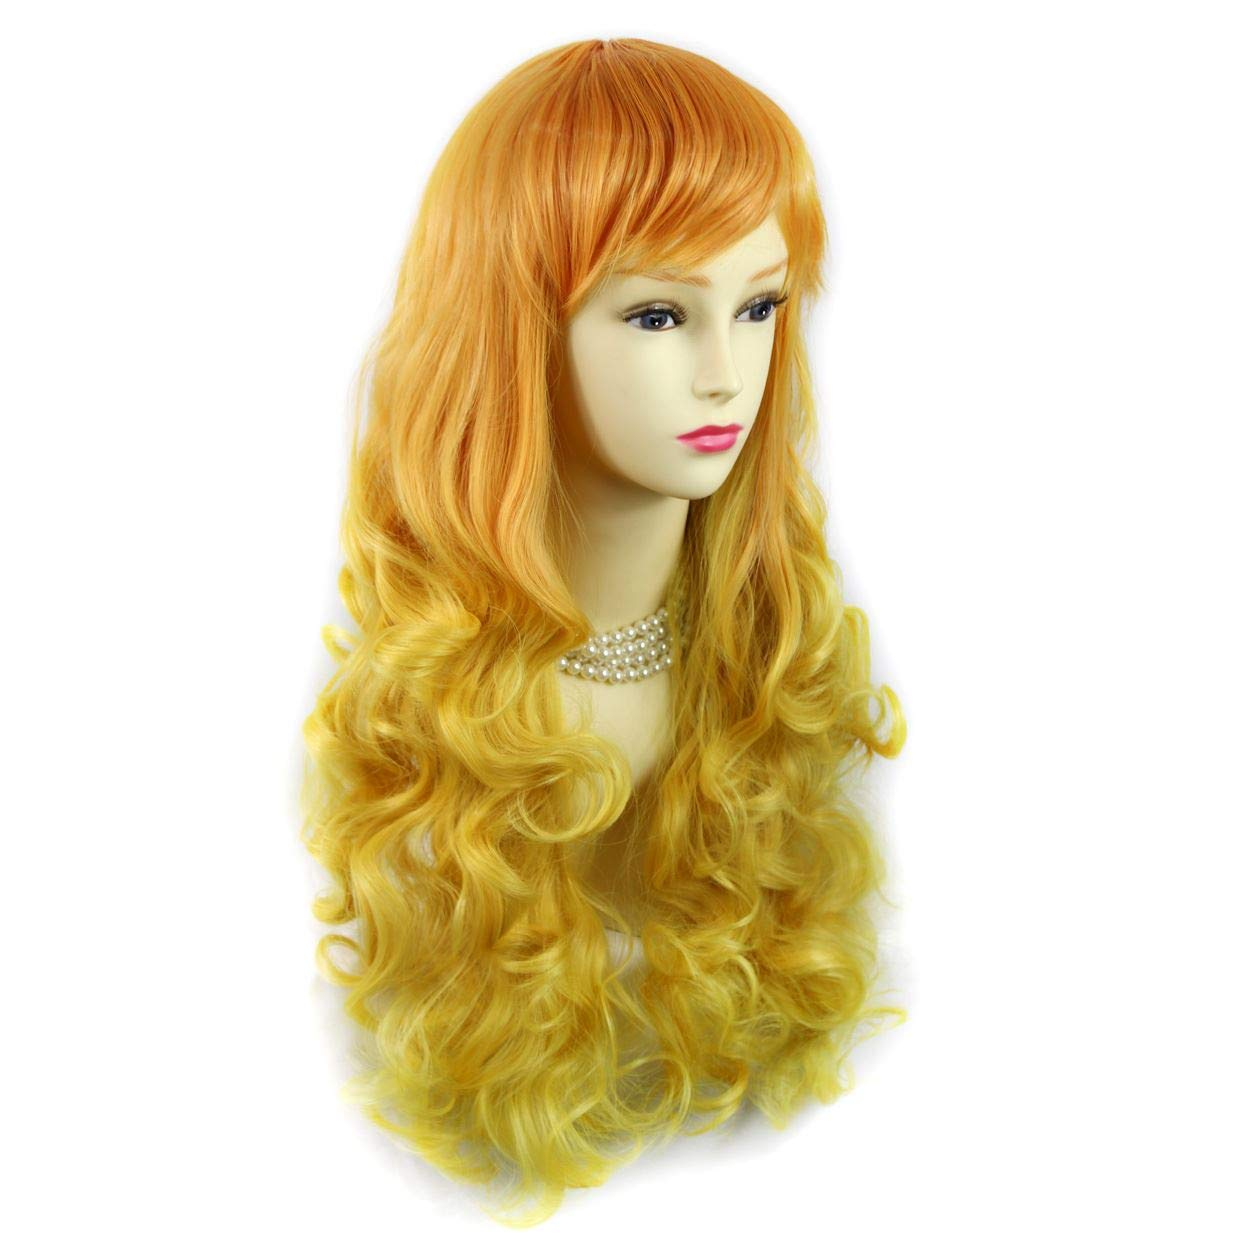 Amazon.com : Wiwigs Romantic Long Curly Wig